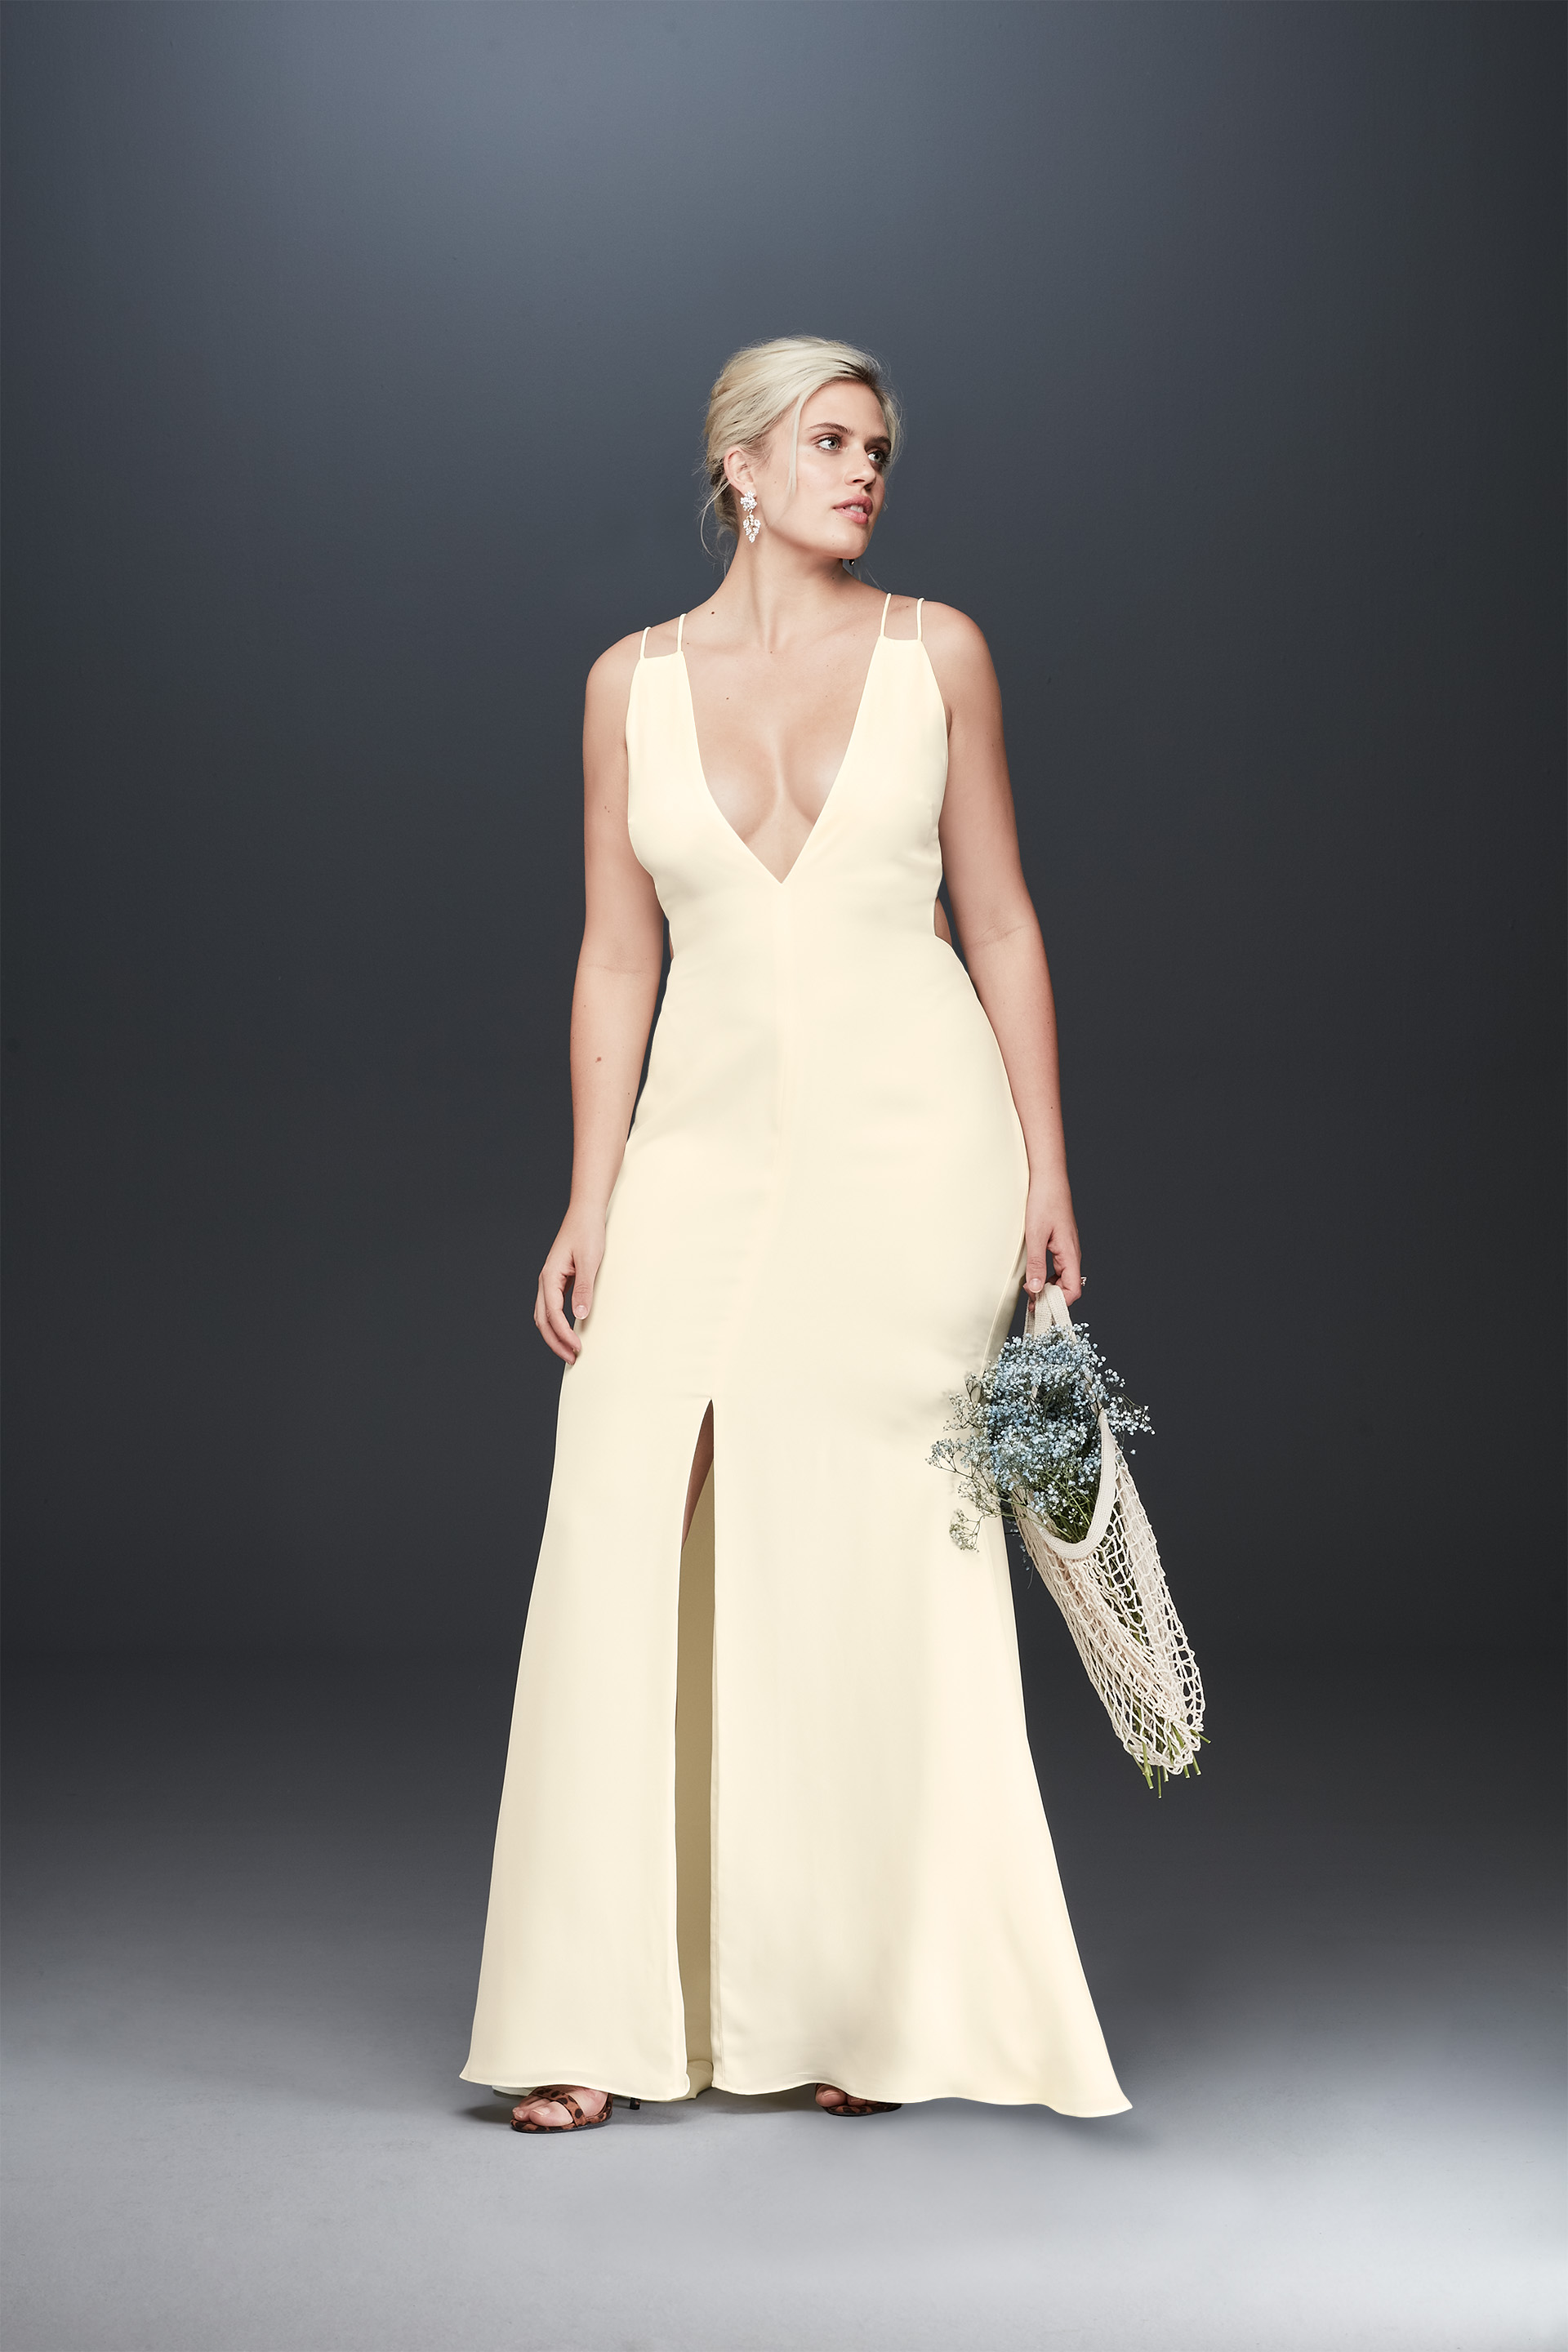 Bride looking away in double strap plunging neckline wedding dress from Fame & Partners x David's Bridal collection